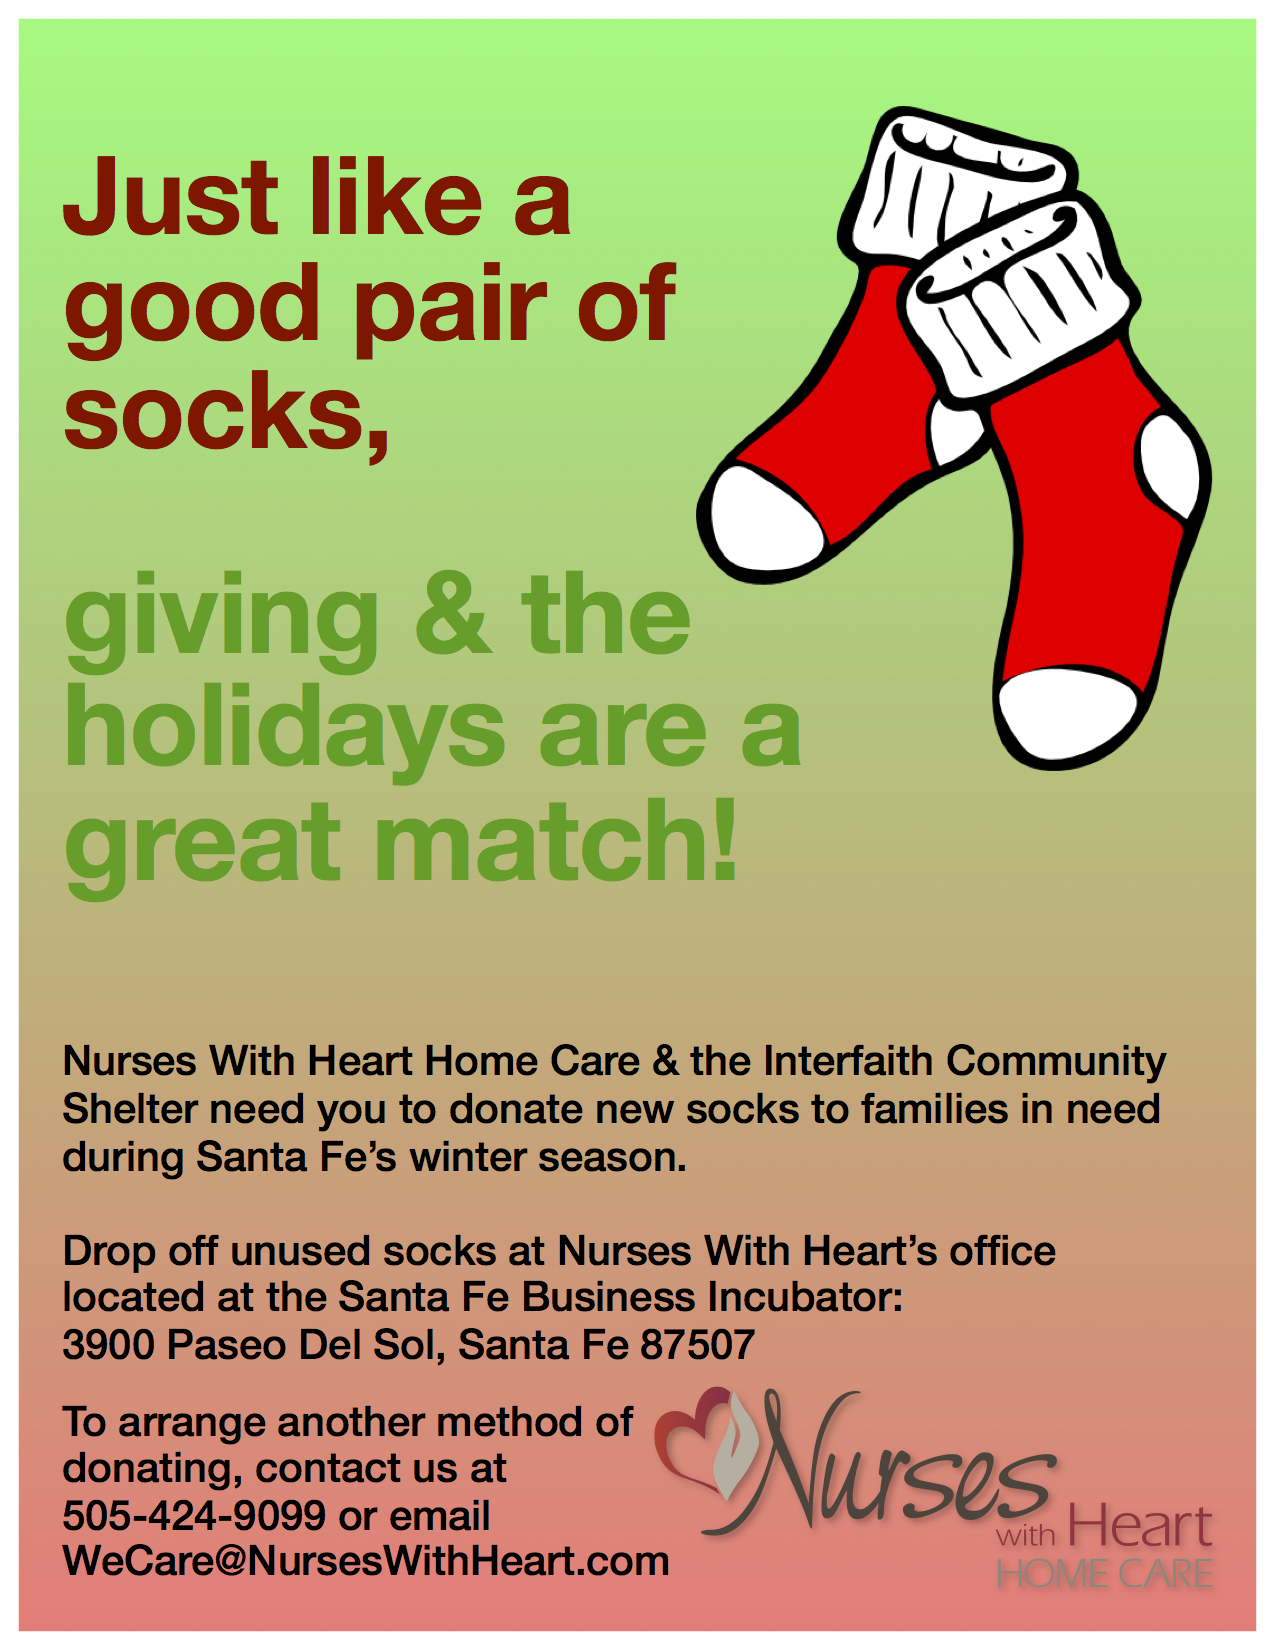 Nurses With Heart 2017 Sock Drive